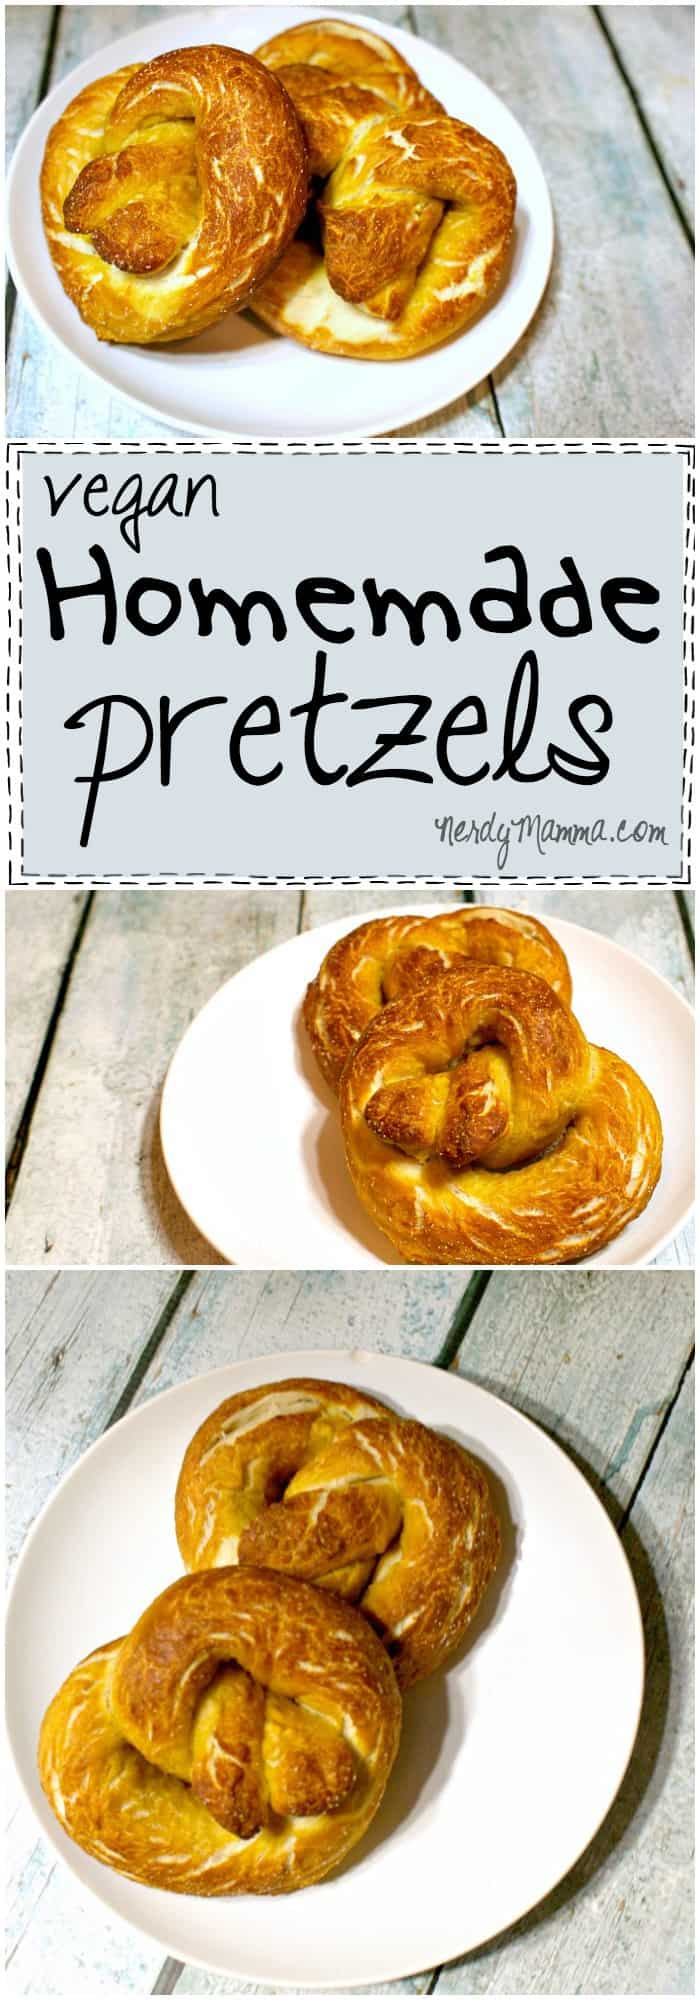 These vegan pretzels are totally awesome. All hot from the oven and awesome...LOVE IT!